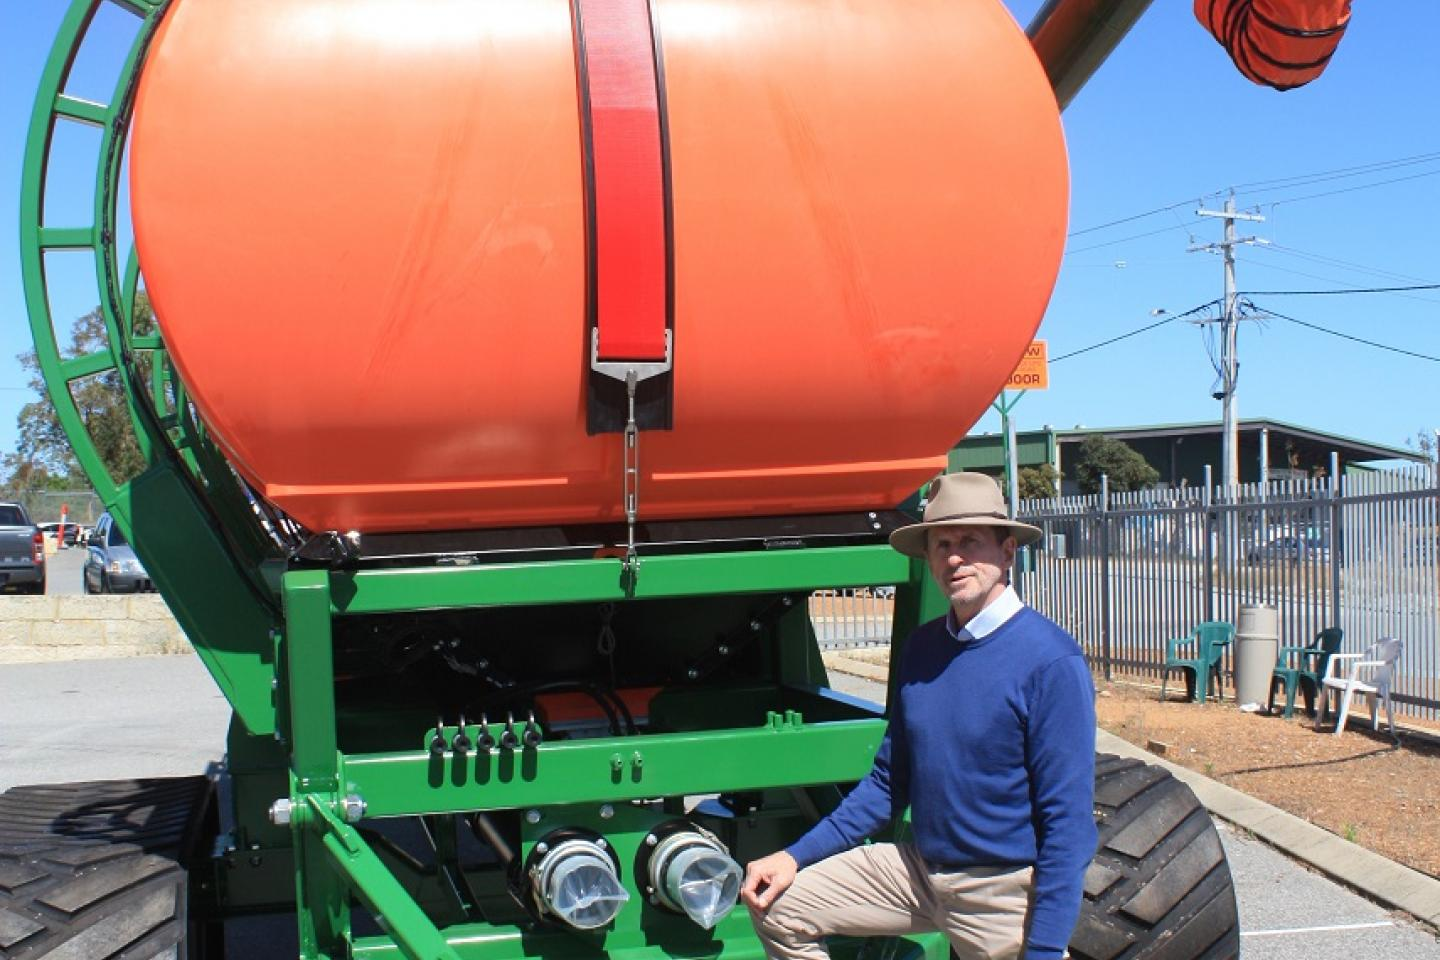 Ausplow sales and marketing manager Chris Blight says the rear hitch can be configured to accept a implement guidance system with the front and rear towing hitch connections accepting Cat 4 and Cat 5 sizes to suit various tractor and seeding bar sizes.